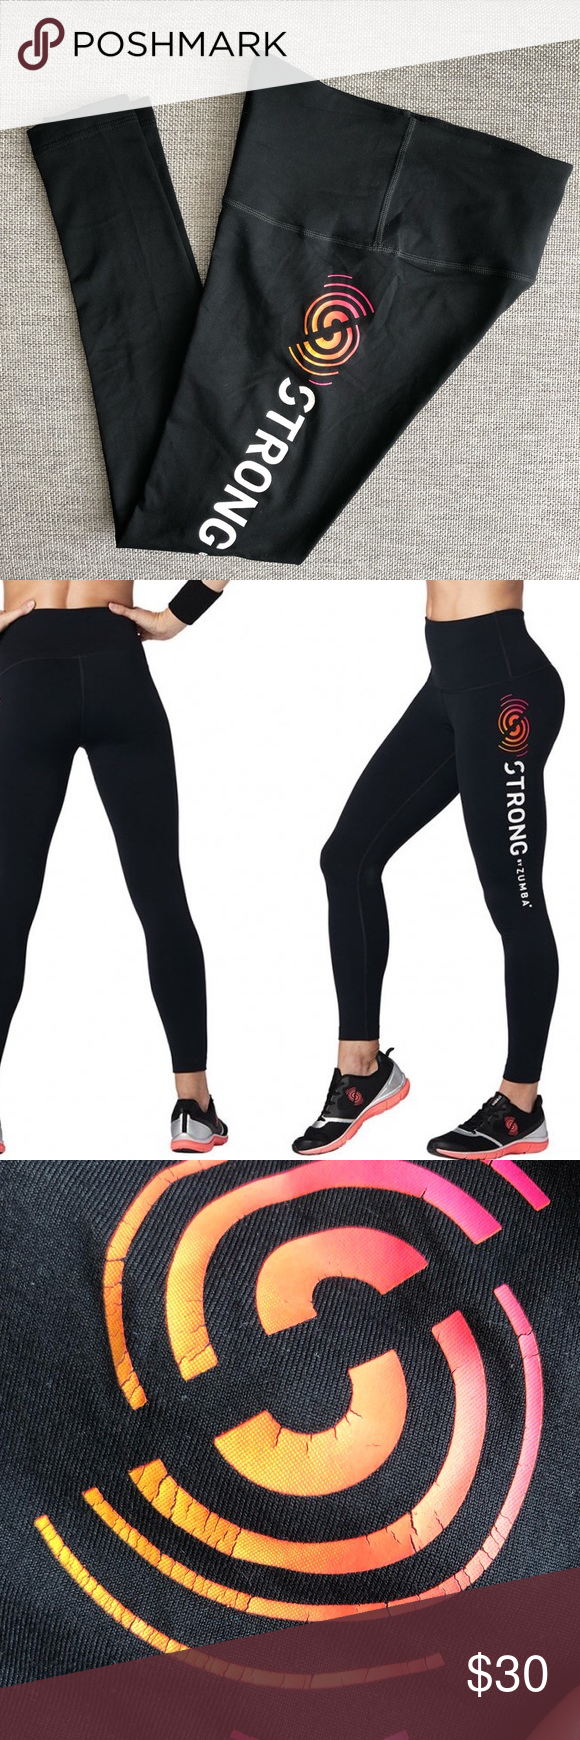 Zumba Fitnes Strong By Zumba High Waisted Leggings Zumba Fitness Strong By Zumba High Waisted Leggings Onl High Waisted Leggings Clothes Design Fashion Design